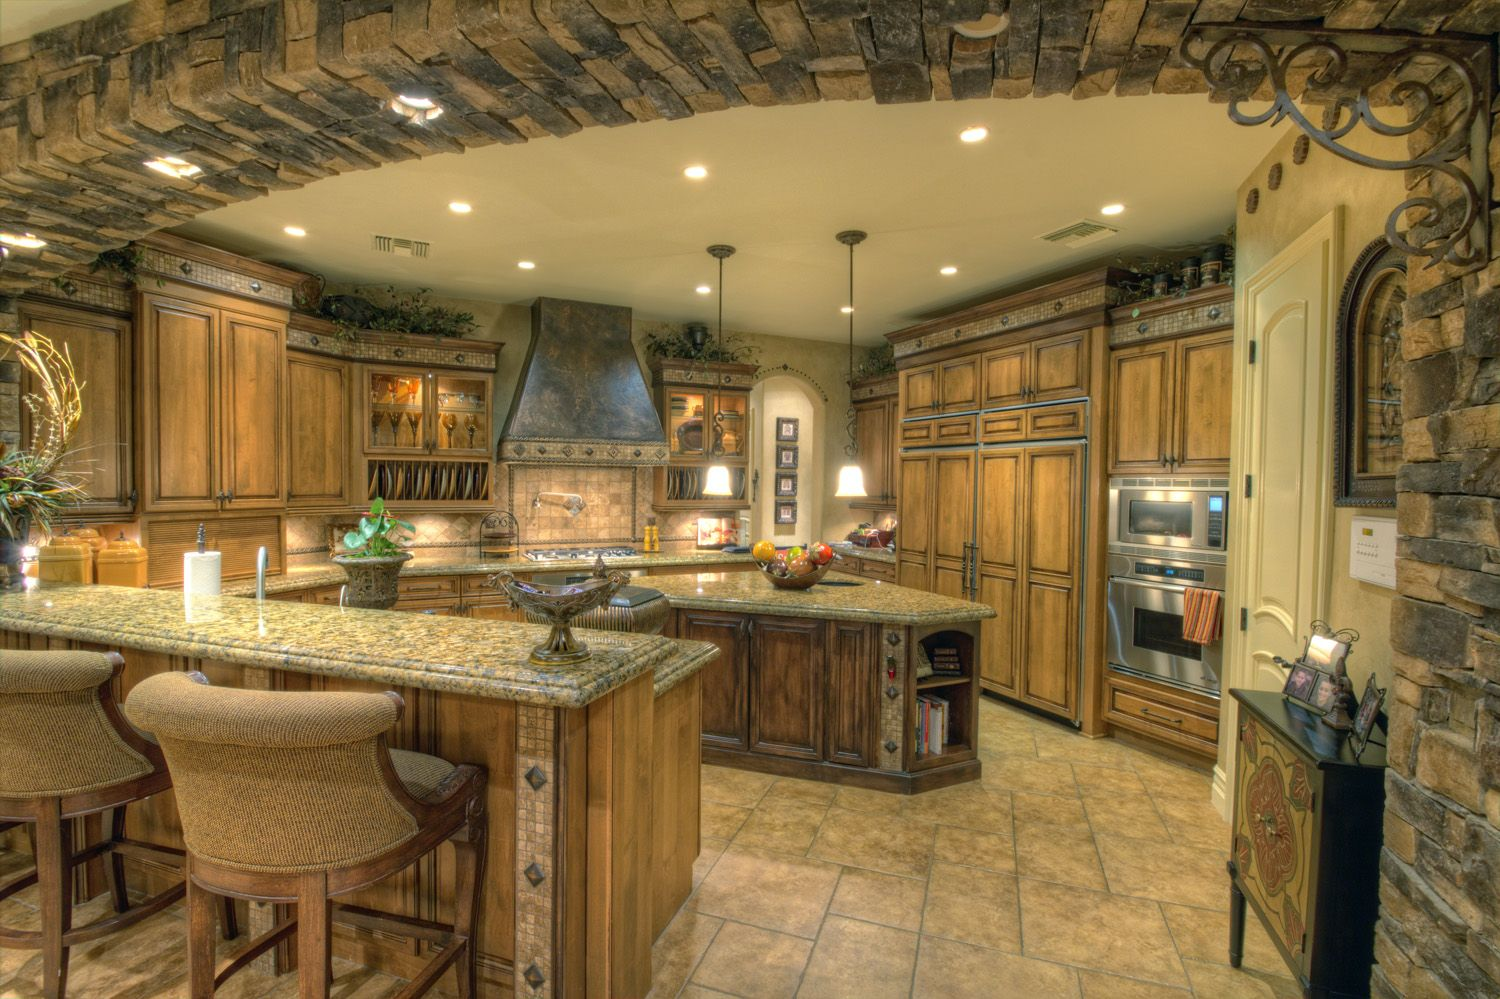 Luxury kitchens luxury estate designer for More kitchen designs